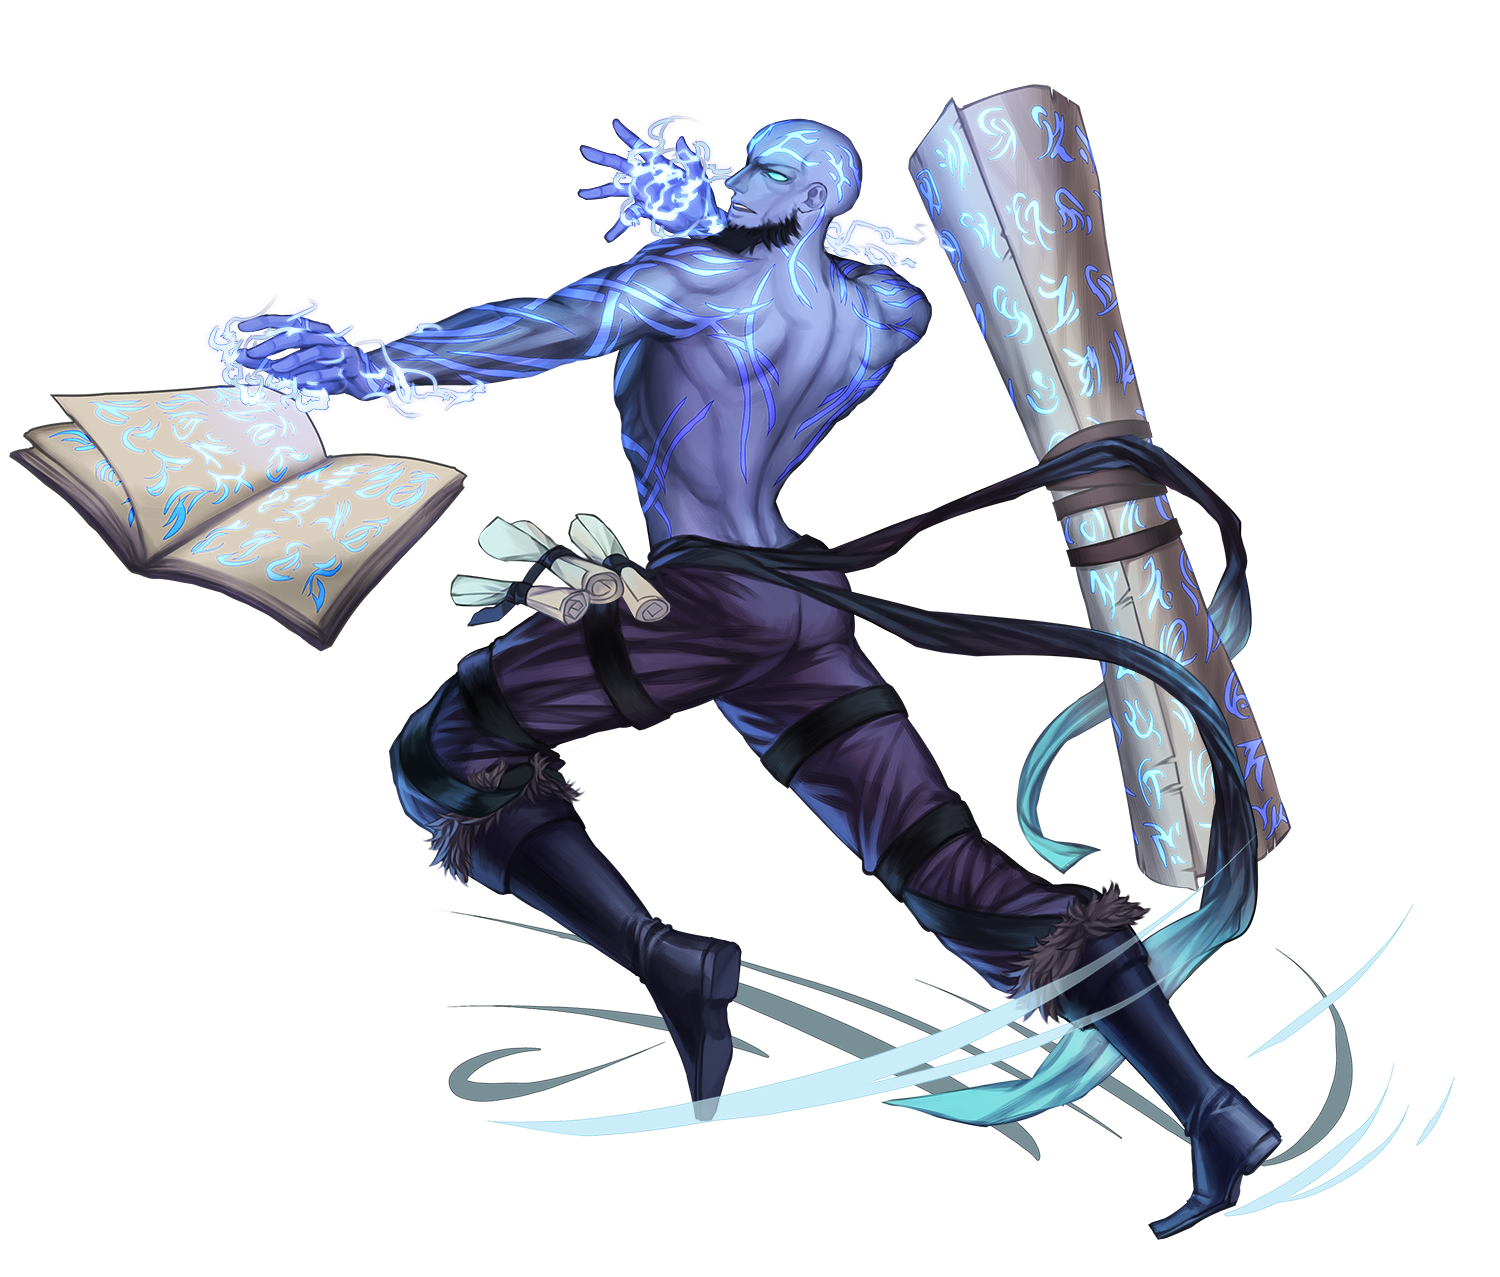 Ryze (League of Legends)